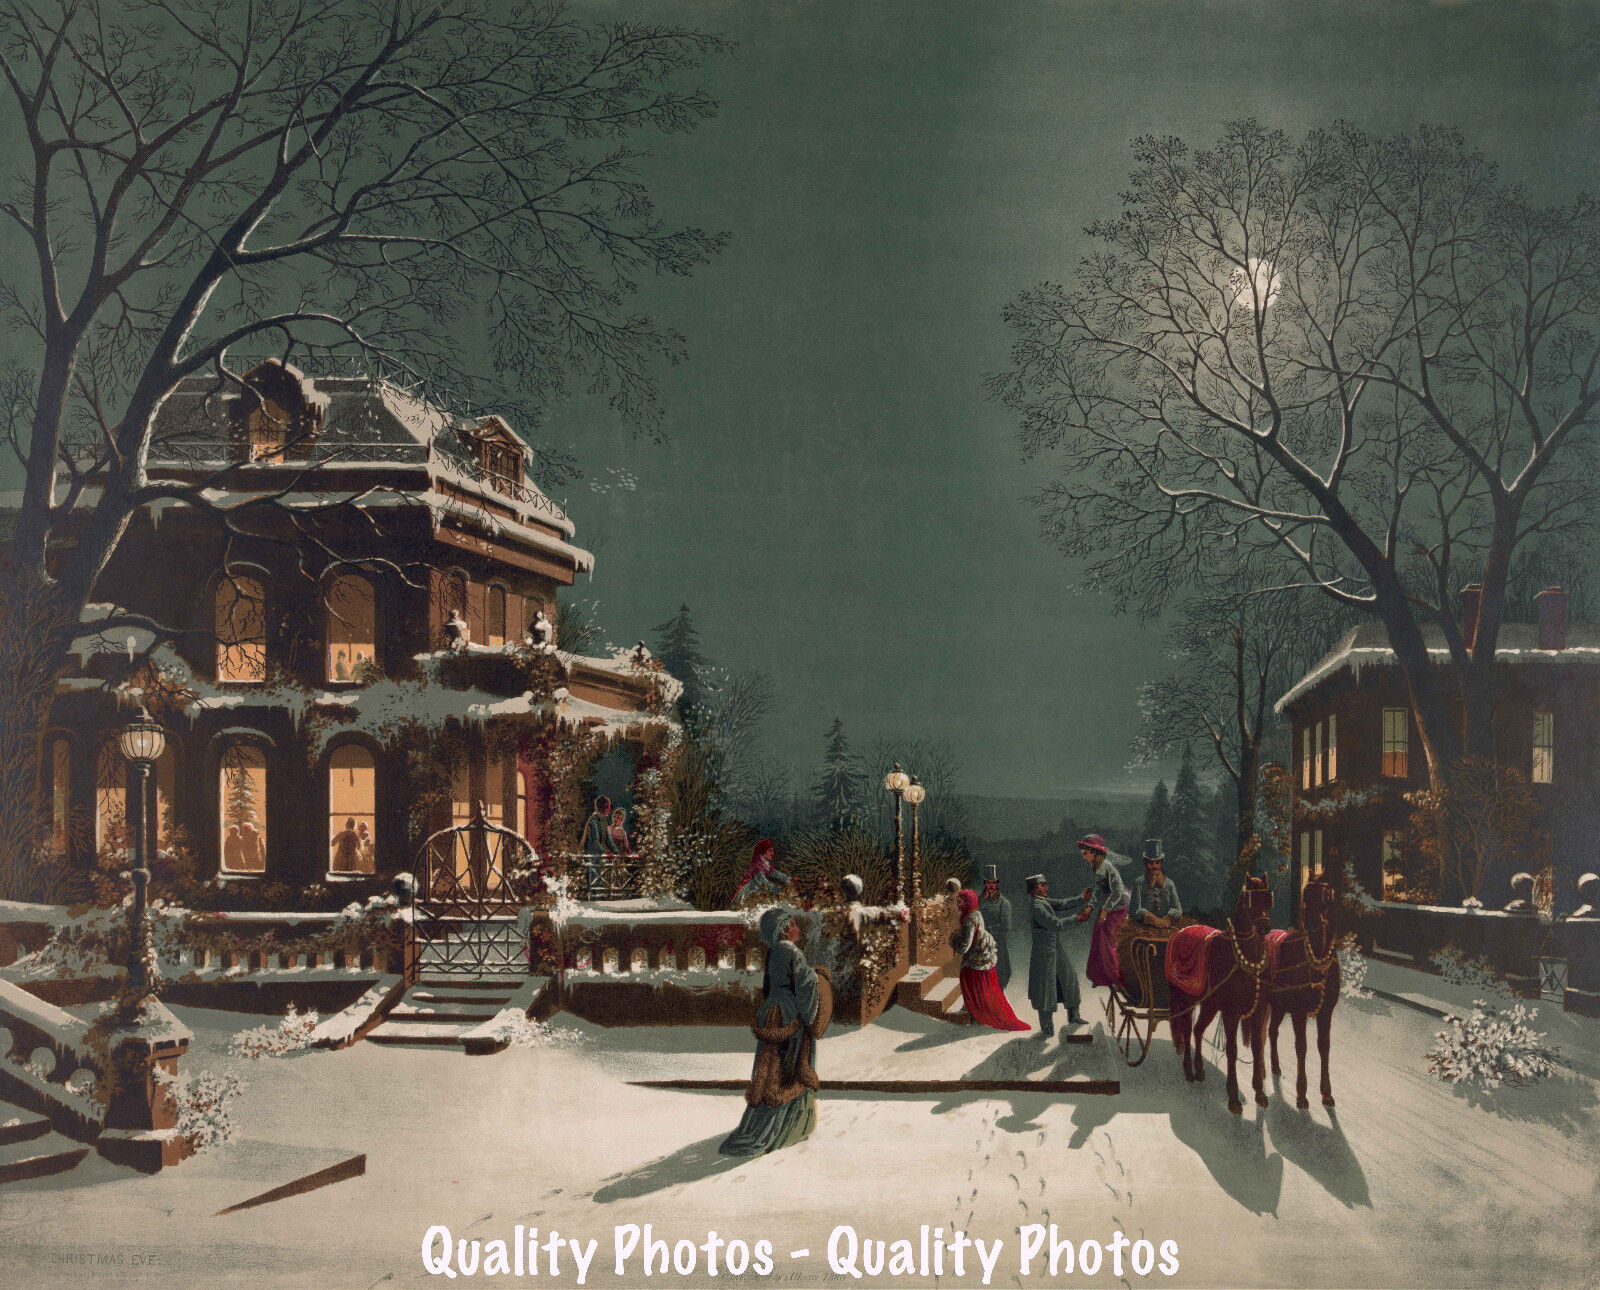 Old Fashioned Christmas Pictures.Details About Old Fashioned Christmas Eve 8 5x11 Photo Print Xmas Decoration Street Scene